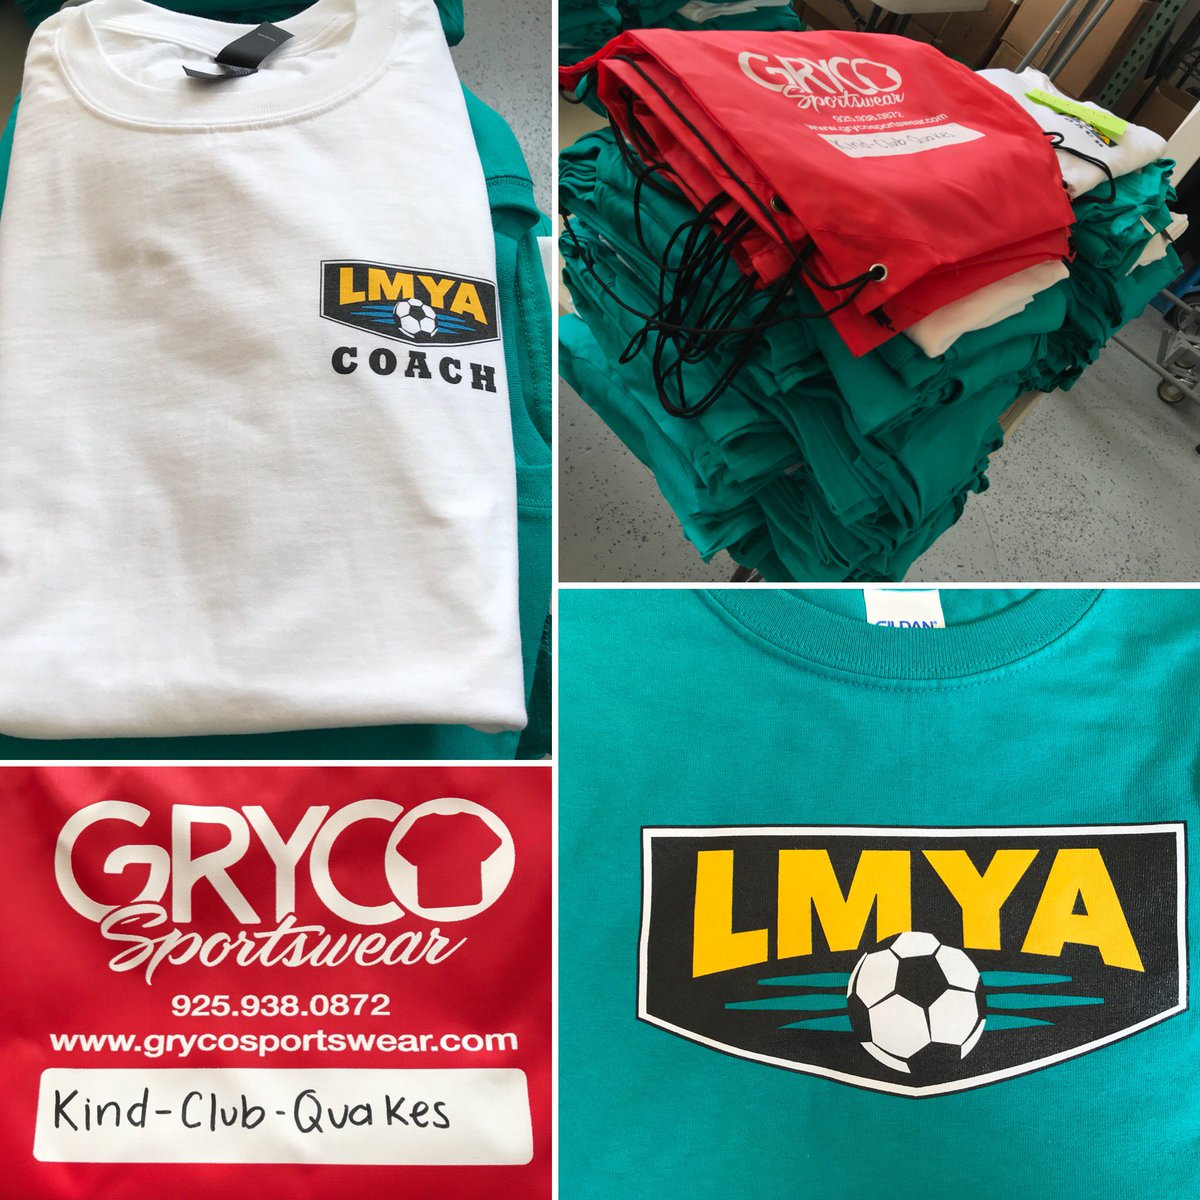 edde631ec3b We are just bundling things up for Lafayette Moraga Youth Association  (LMYA) Soccer. Putting them all together with some Gryco Sportswear Cinch  Bags.